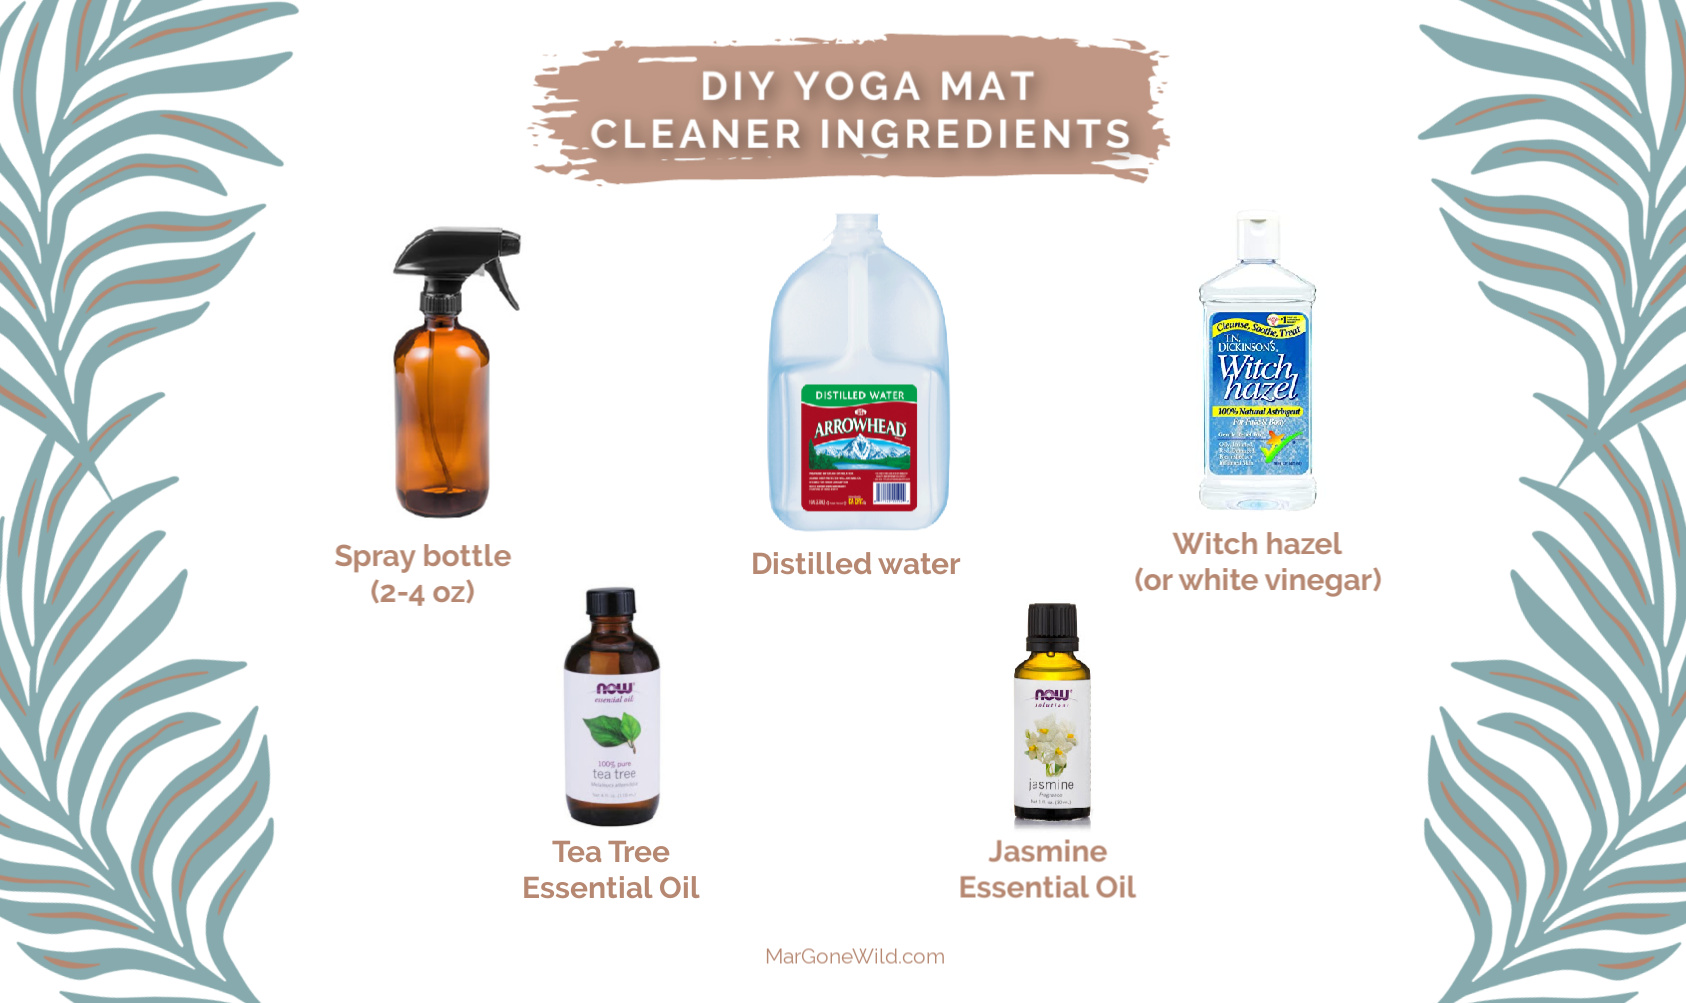 DIY yoga mat cleaner ingredients - MarGoneWild.com